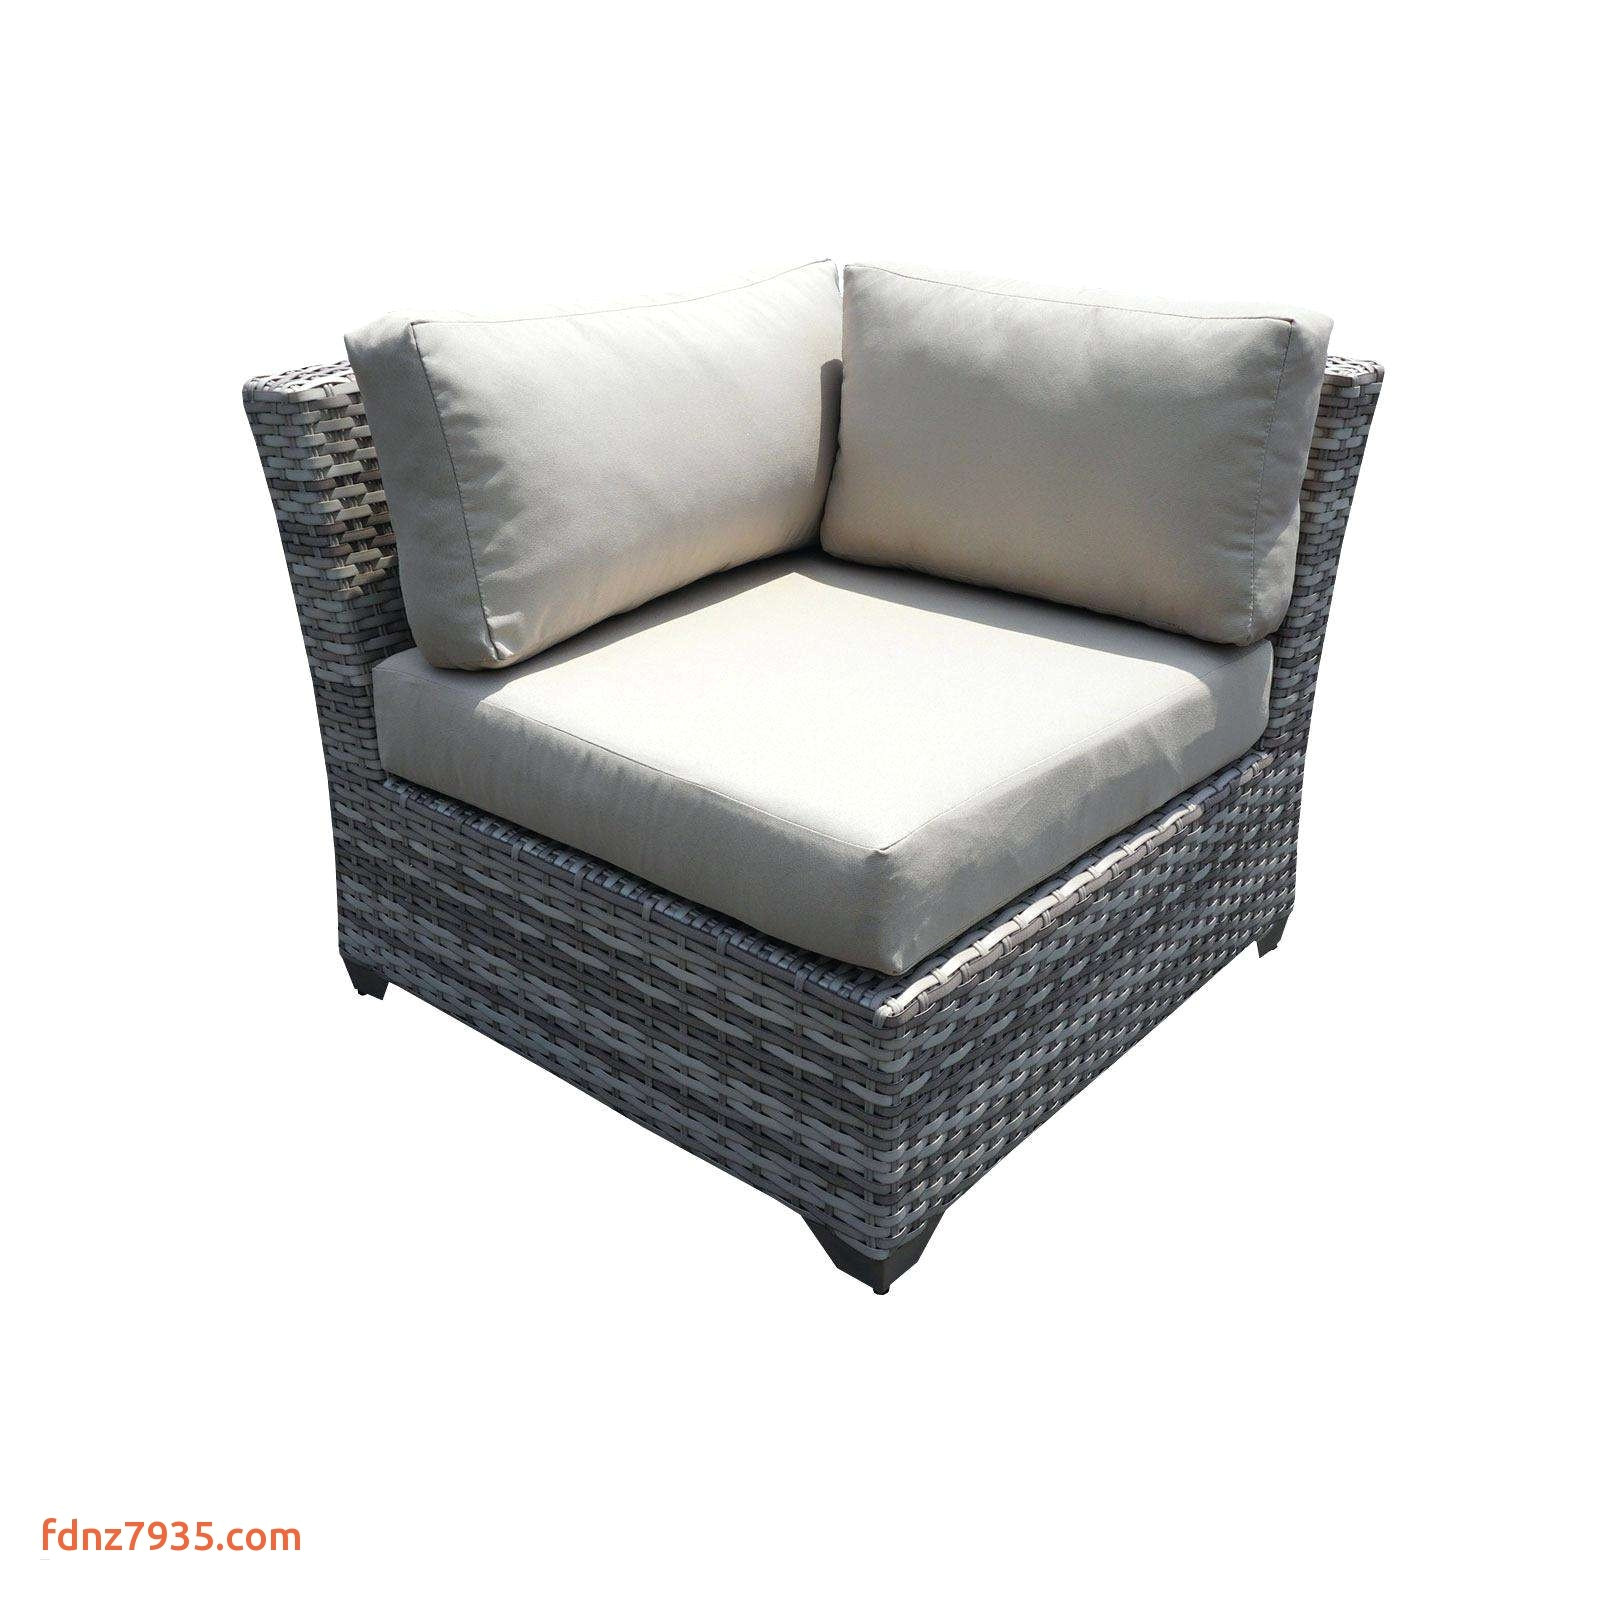 wicker outdoor sofa 0d patio chairs sale replacement cushions design outdoor wicker patio furniture